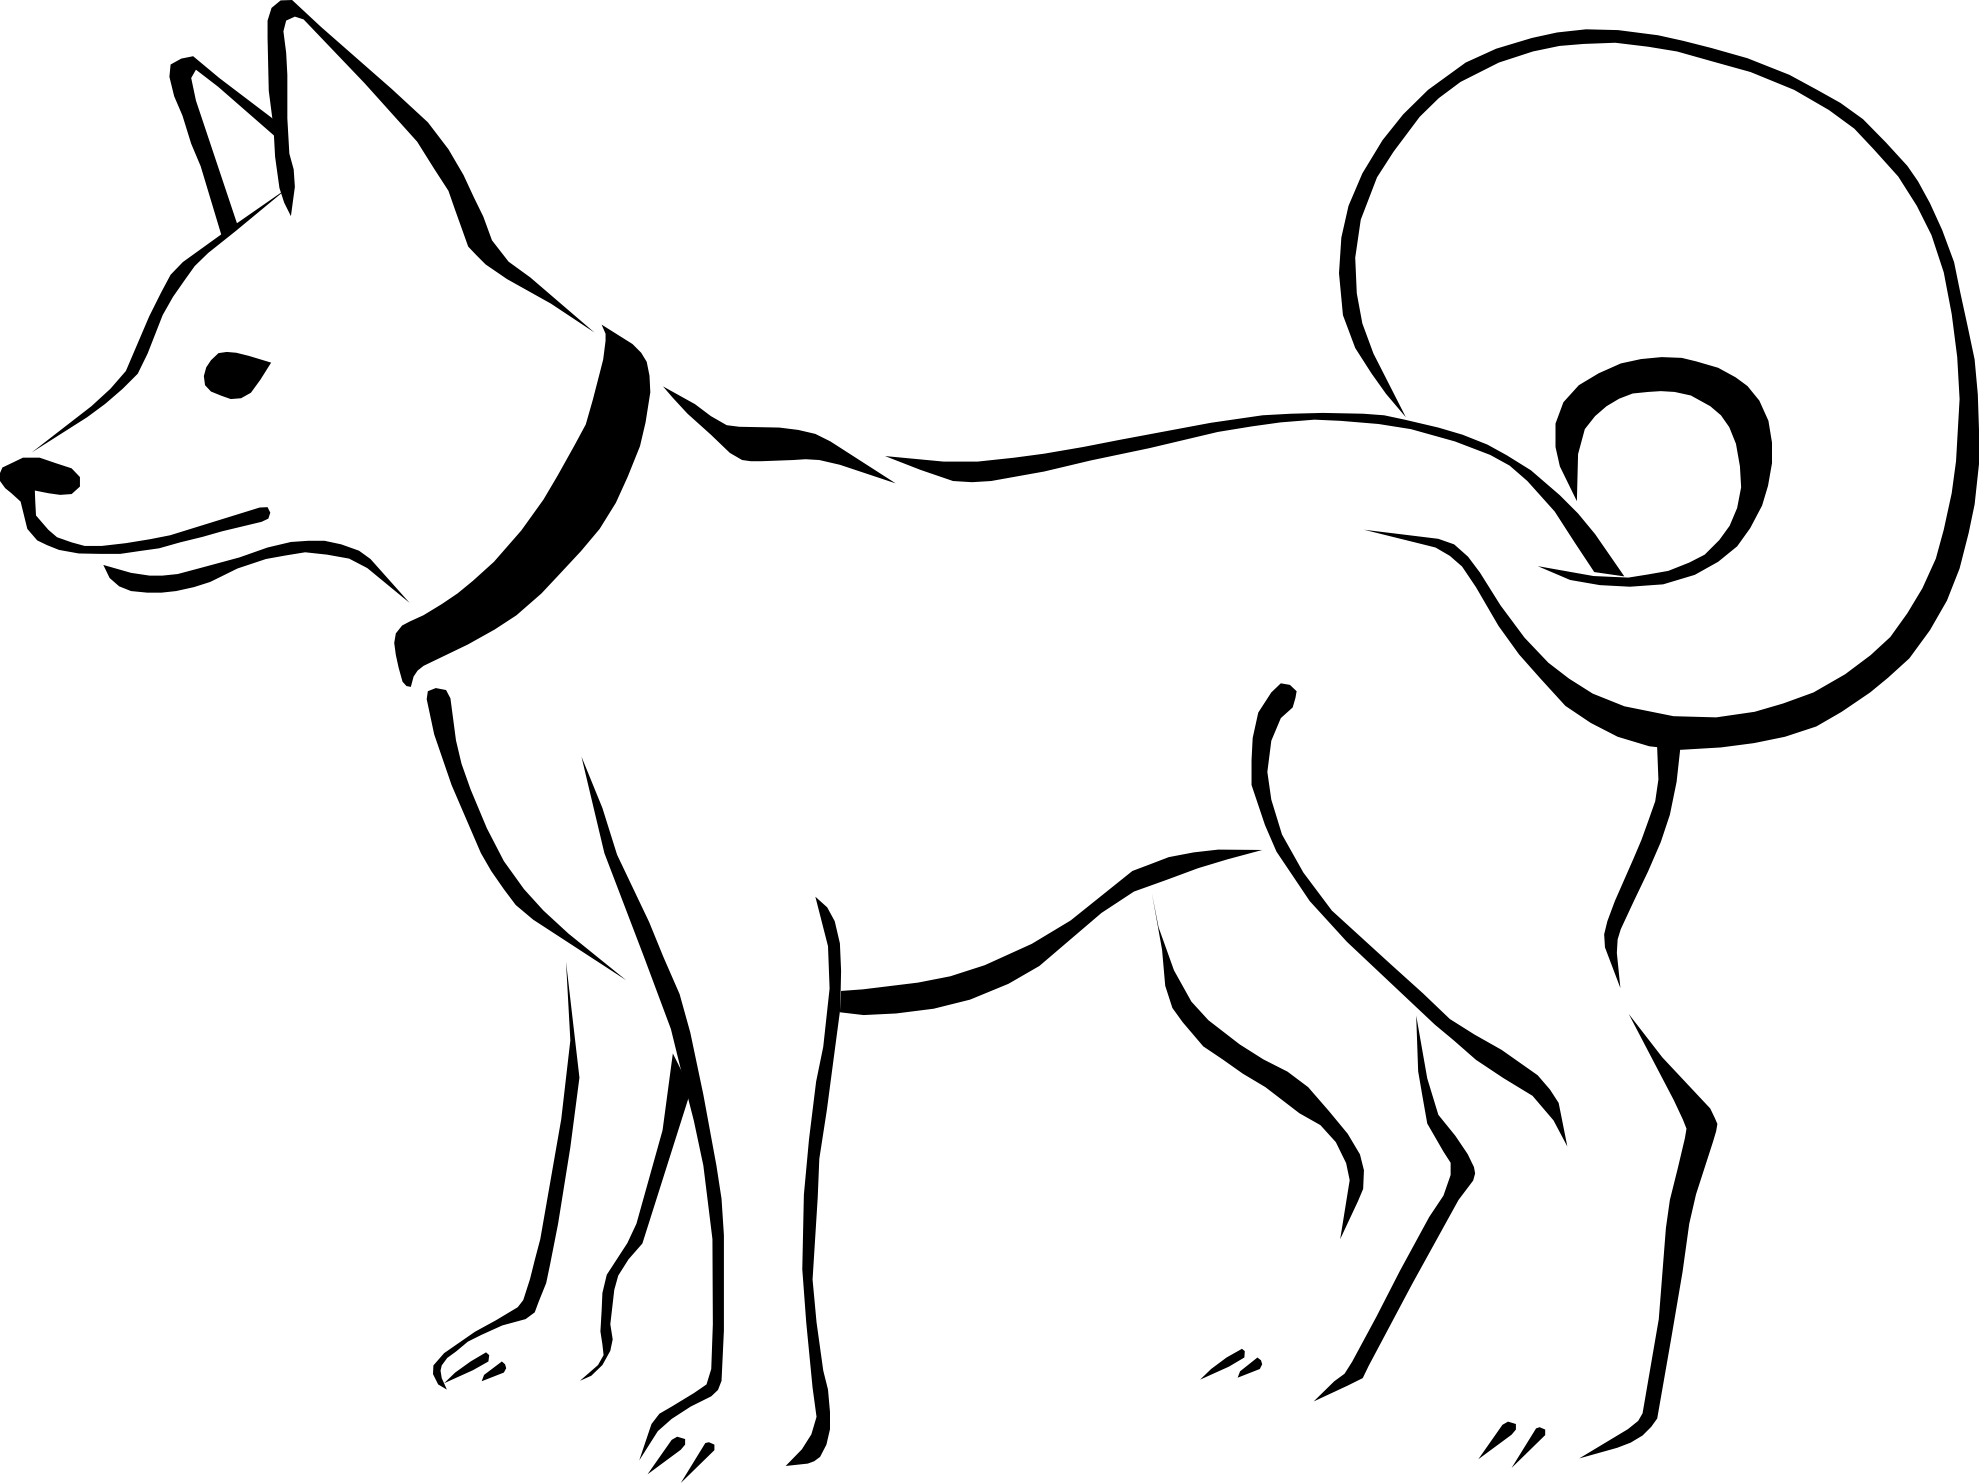 Simple Line Drawing Clip Art : Dog line drawing clipart best